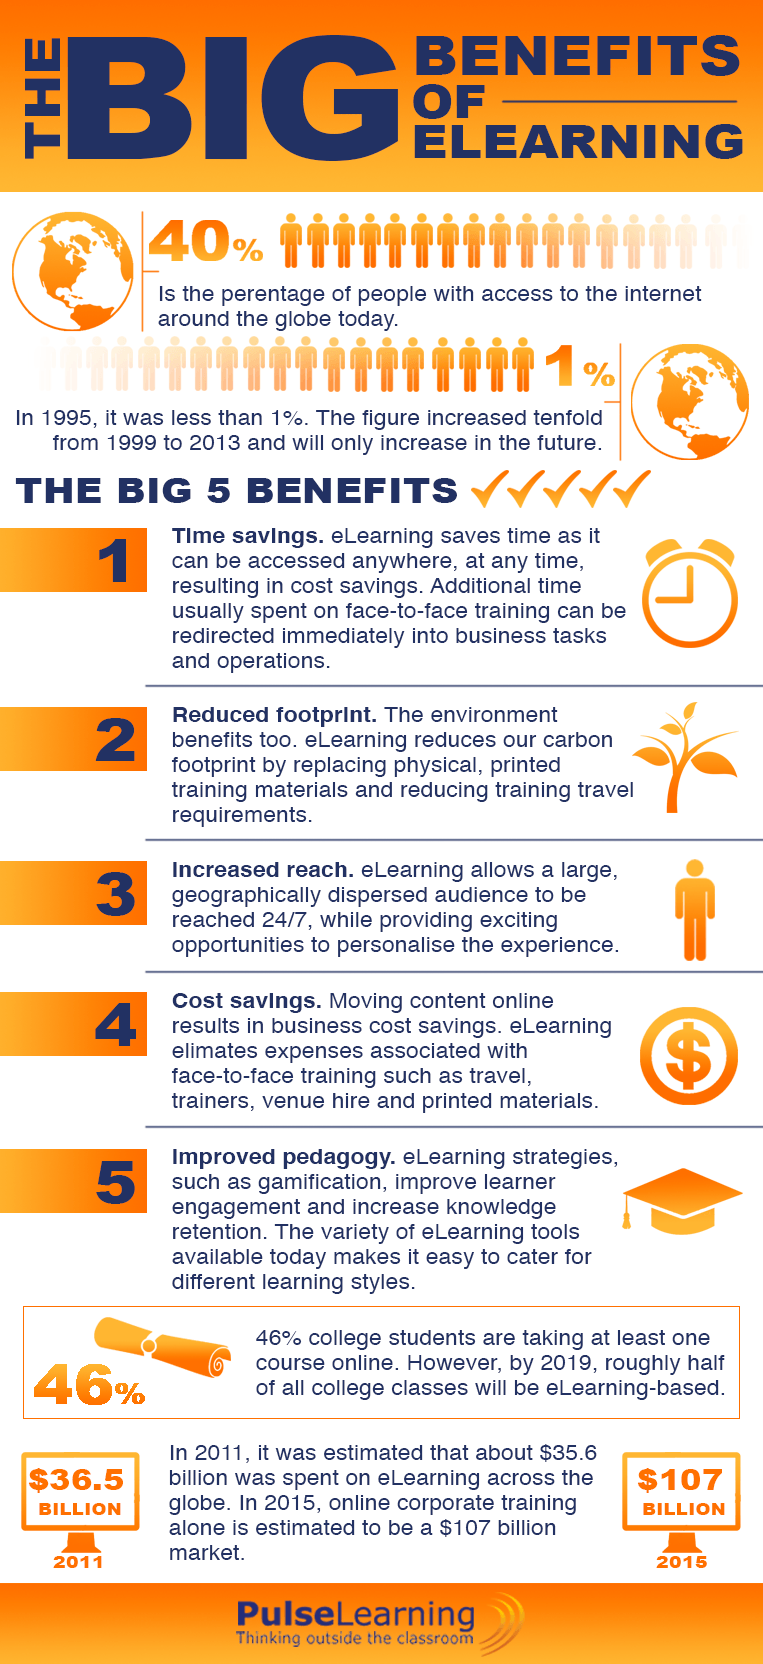 The Big Benefits of eLearning Infographic